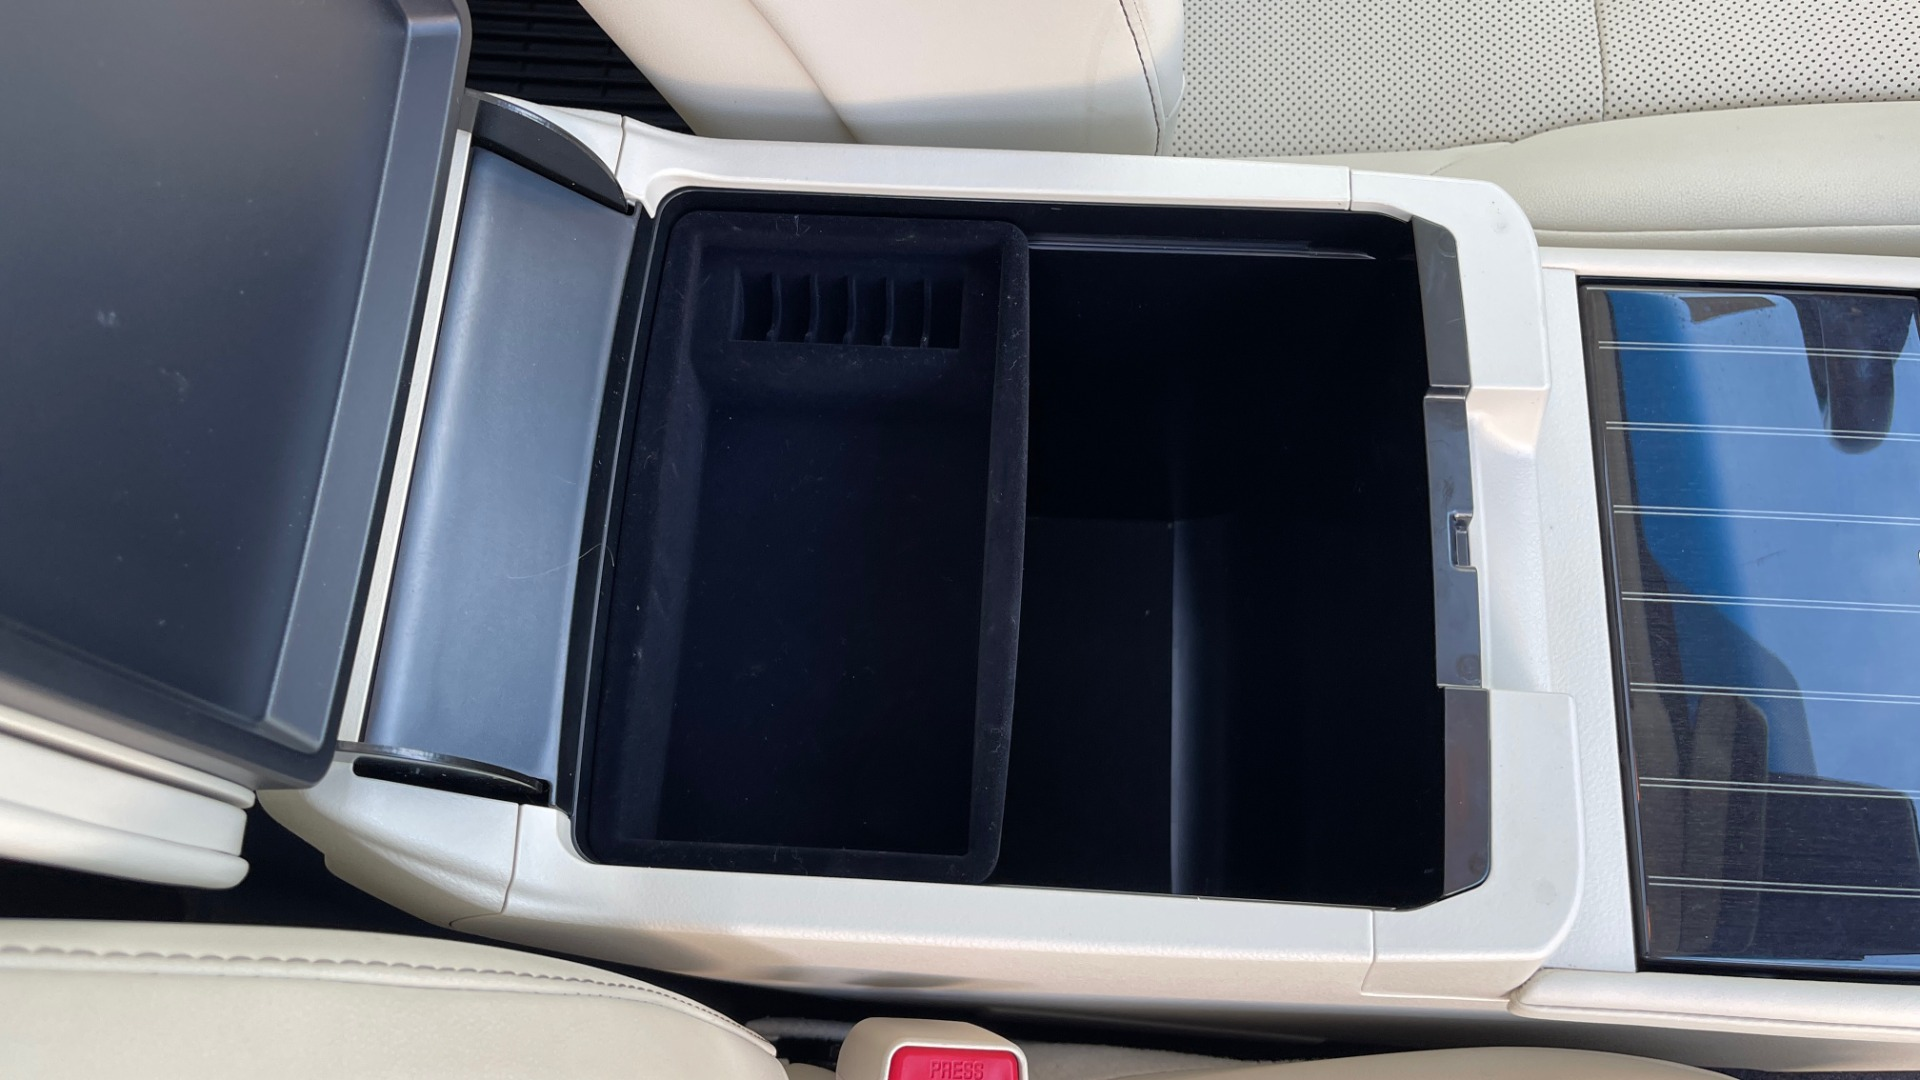 Used 2020 Lexus GX 460 PREMIUM / AWD / NAV / SUNROOF / 3-ROW / REARVIEW for sale $54,495 at Formula Imports in Charlotte NC 28227 67